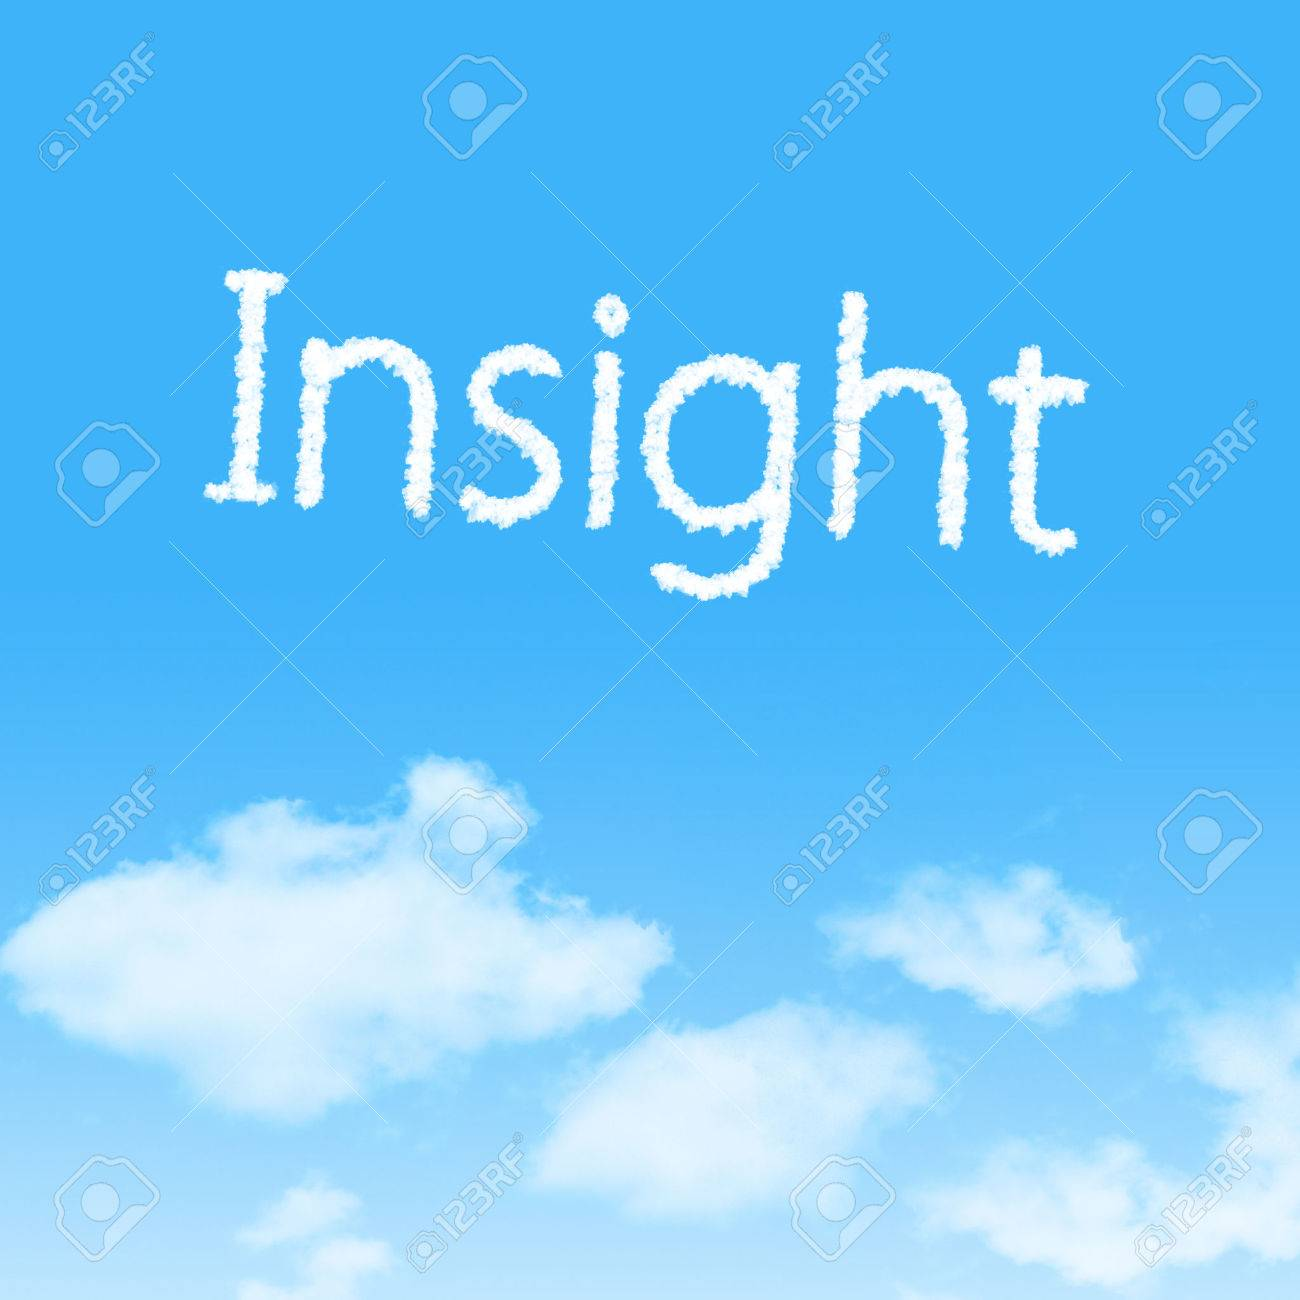 Insight Cloud Icon With Design On Blue Sky Background Stock Photo 1300x1300